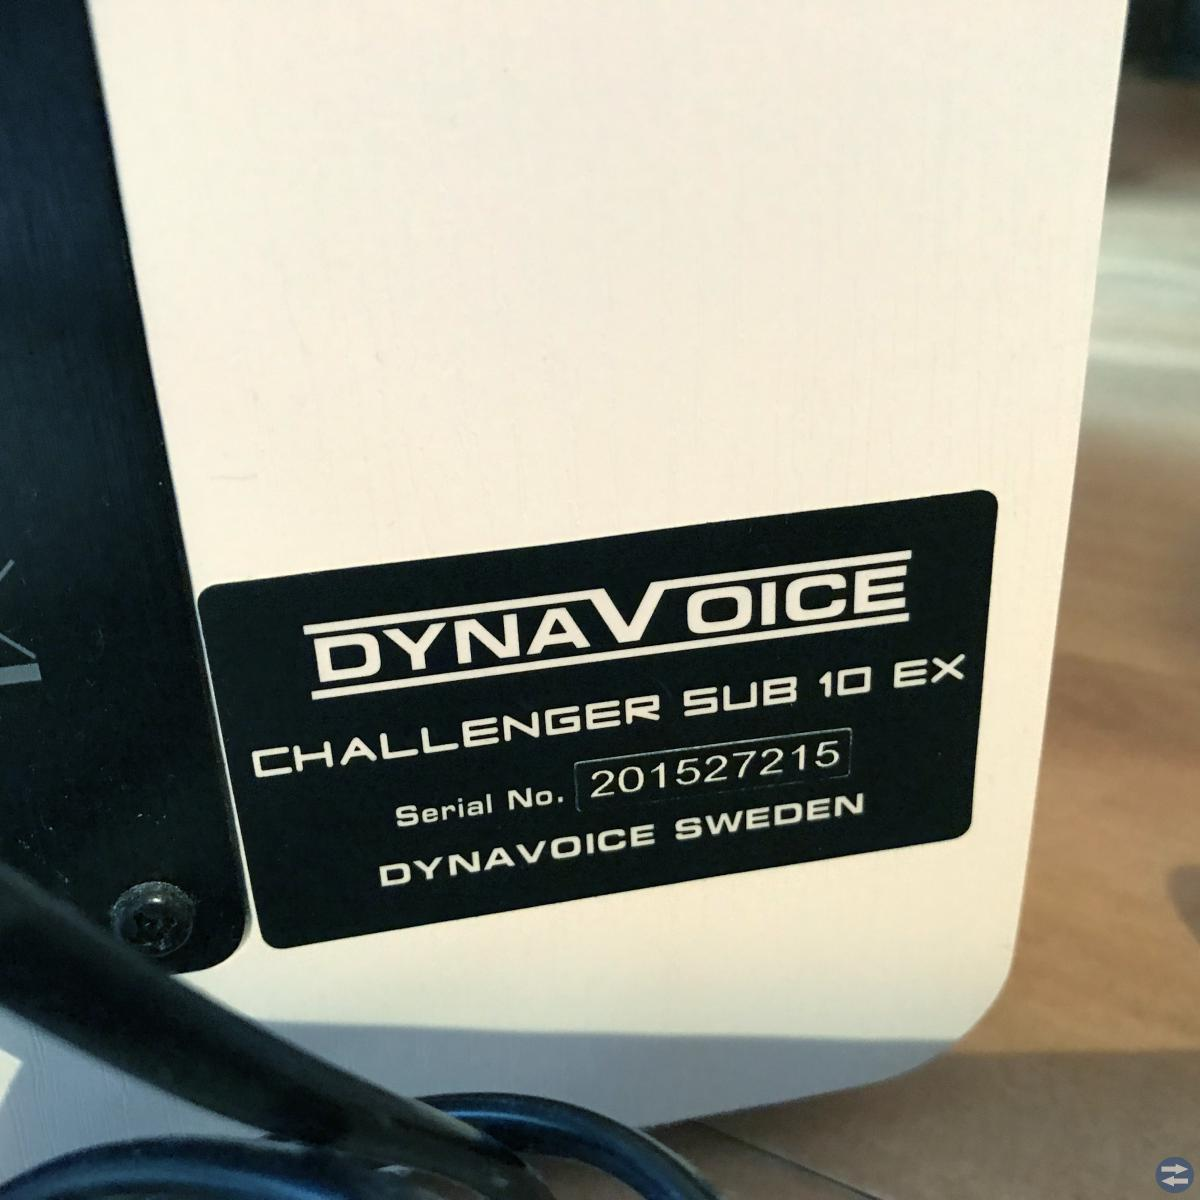 Hemmabio Subwoofer DYNAVOICE CHALLENGER SUB 10